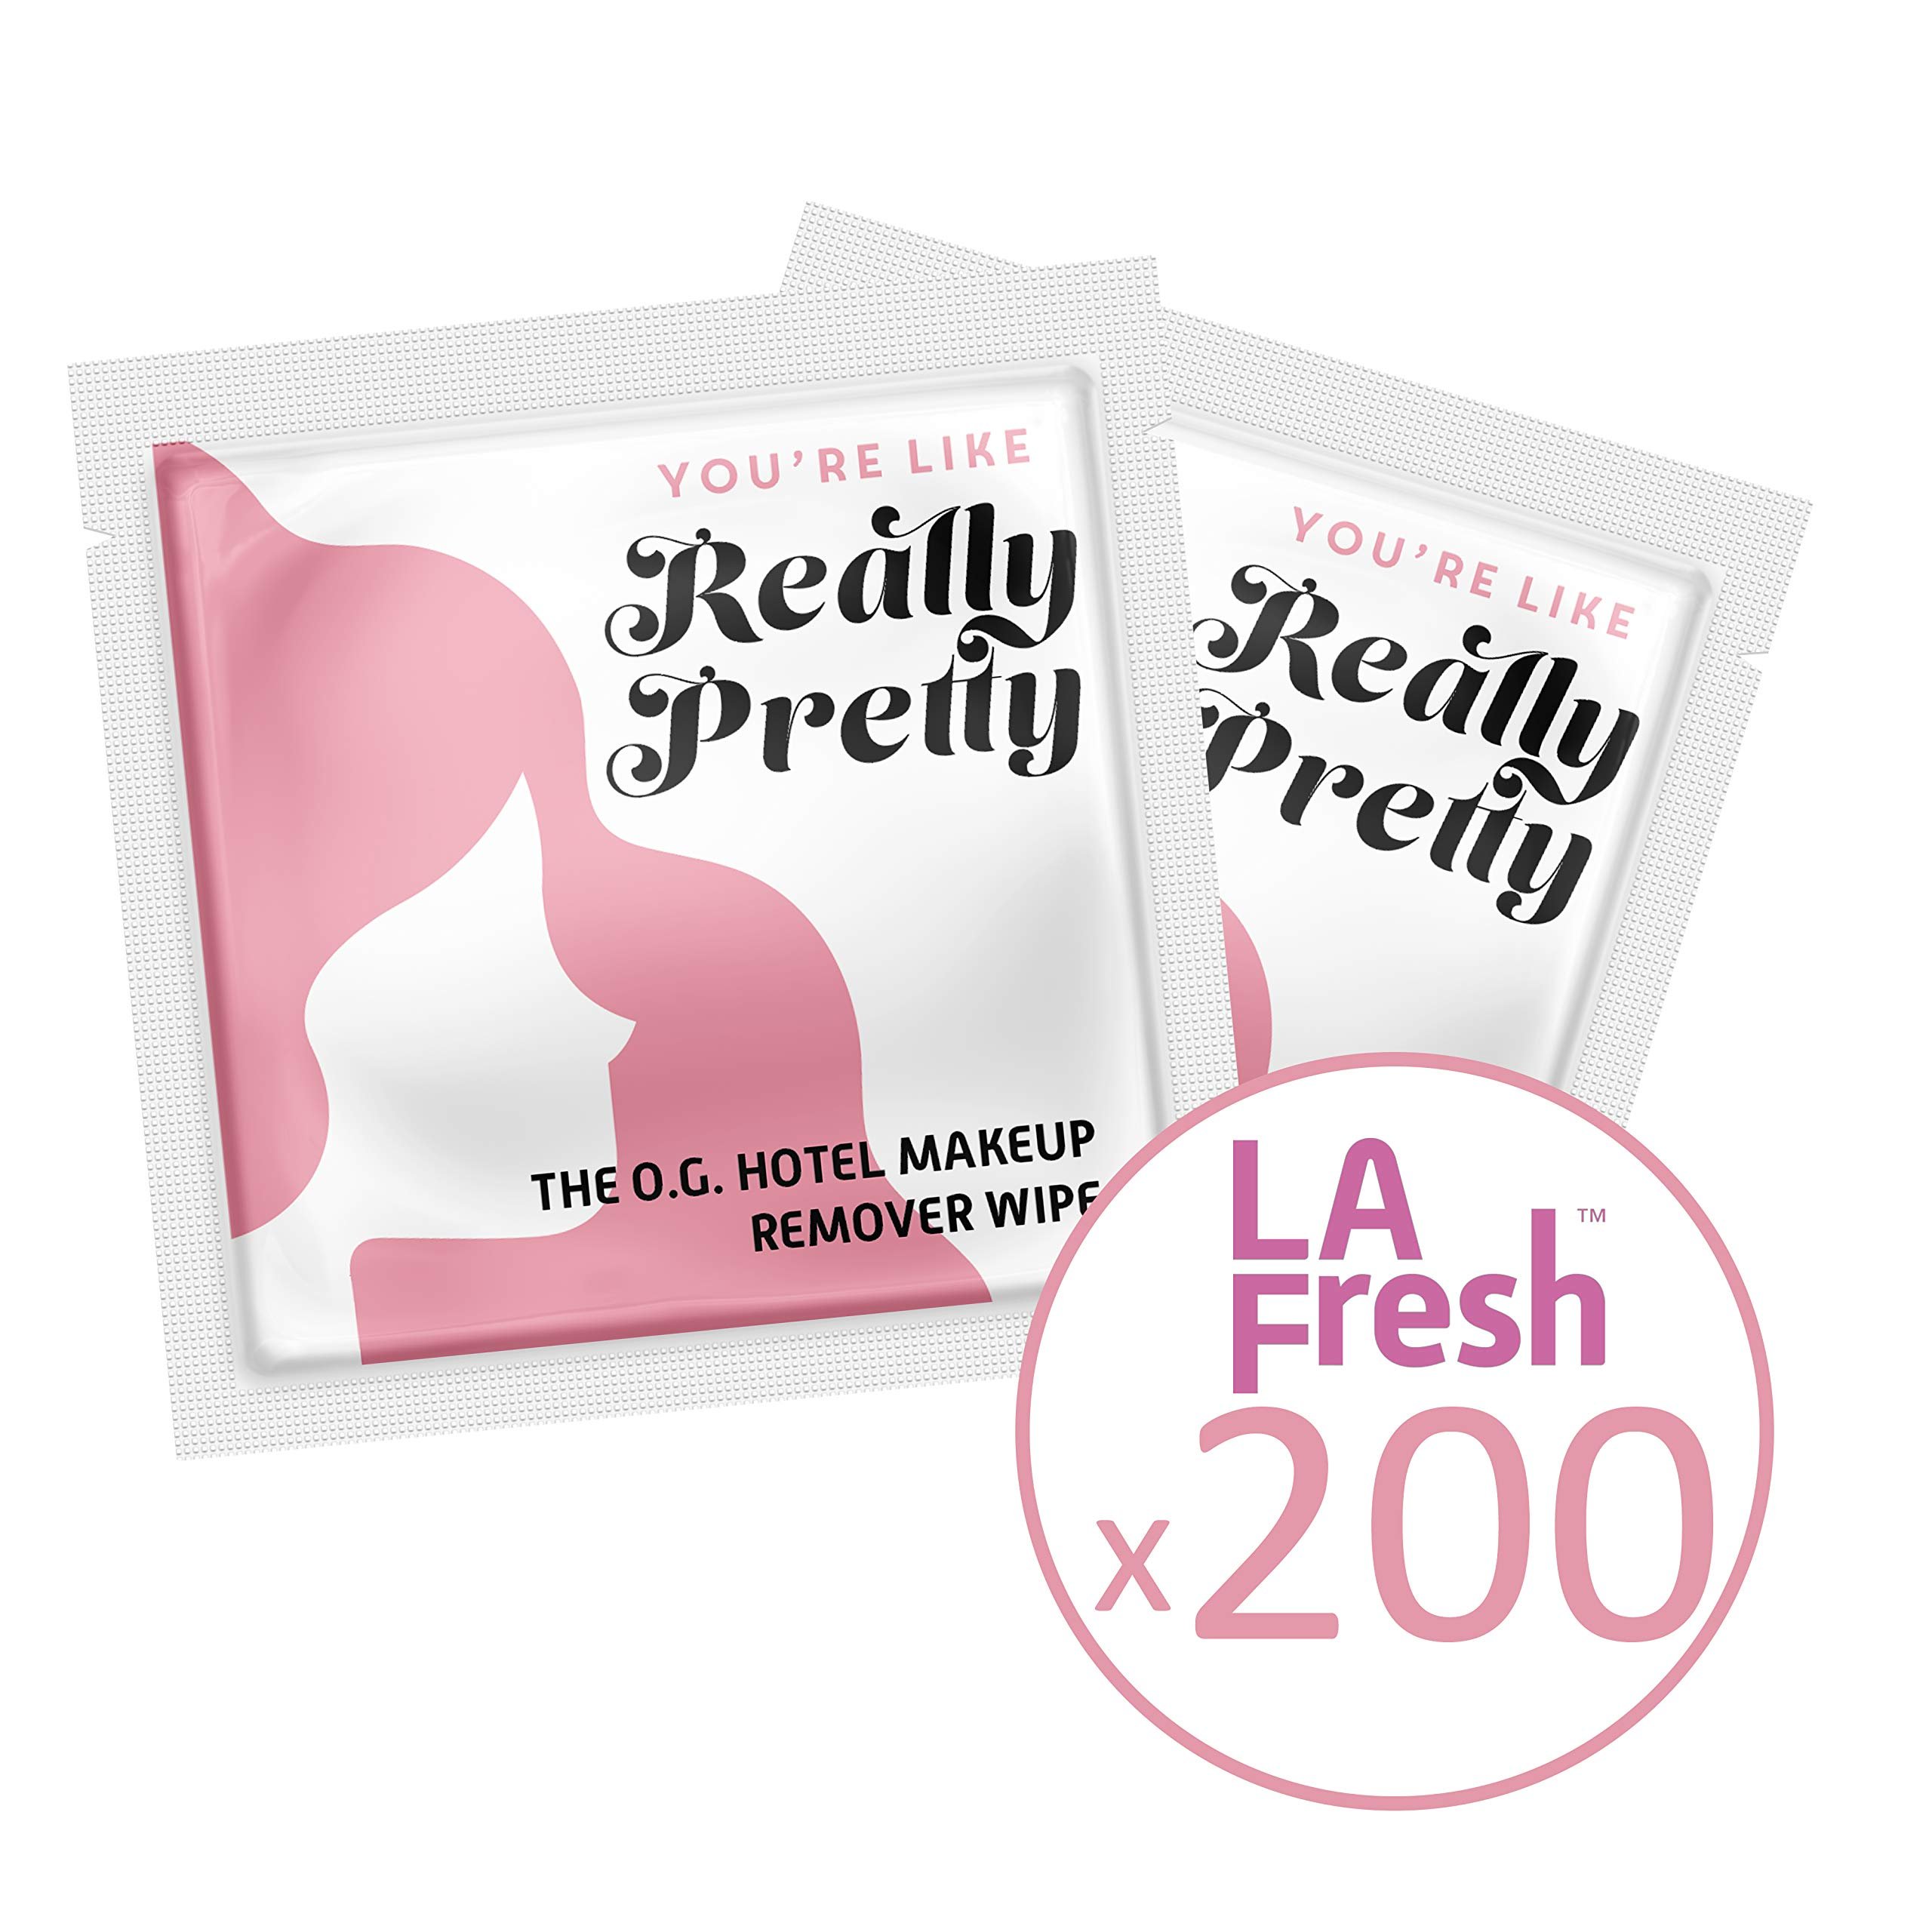 La Fresh Travel Lite Makeup Remover Cleansing Travel Wipes - Natural, Biodegradable, Waterproof, Facial Towelettes With Vitamin E - Individually Wrapped & Sealed (Pack of 200)